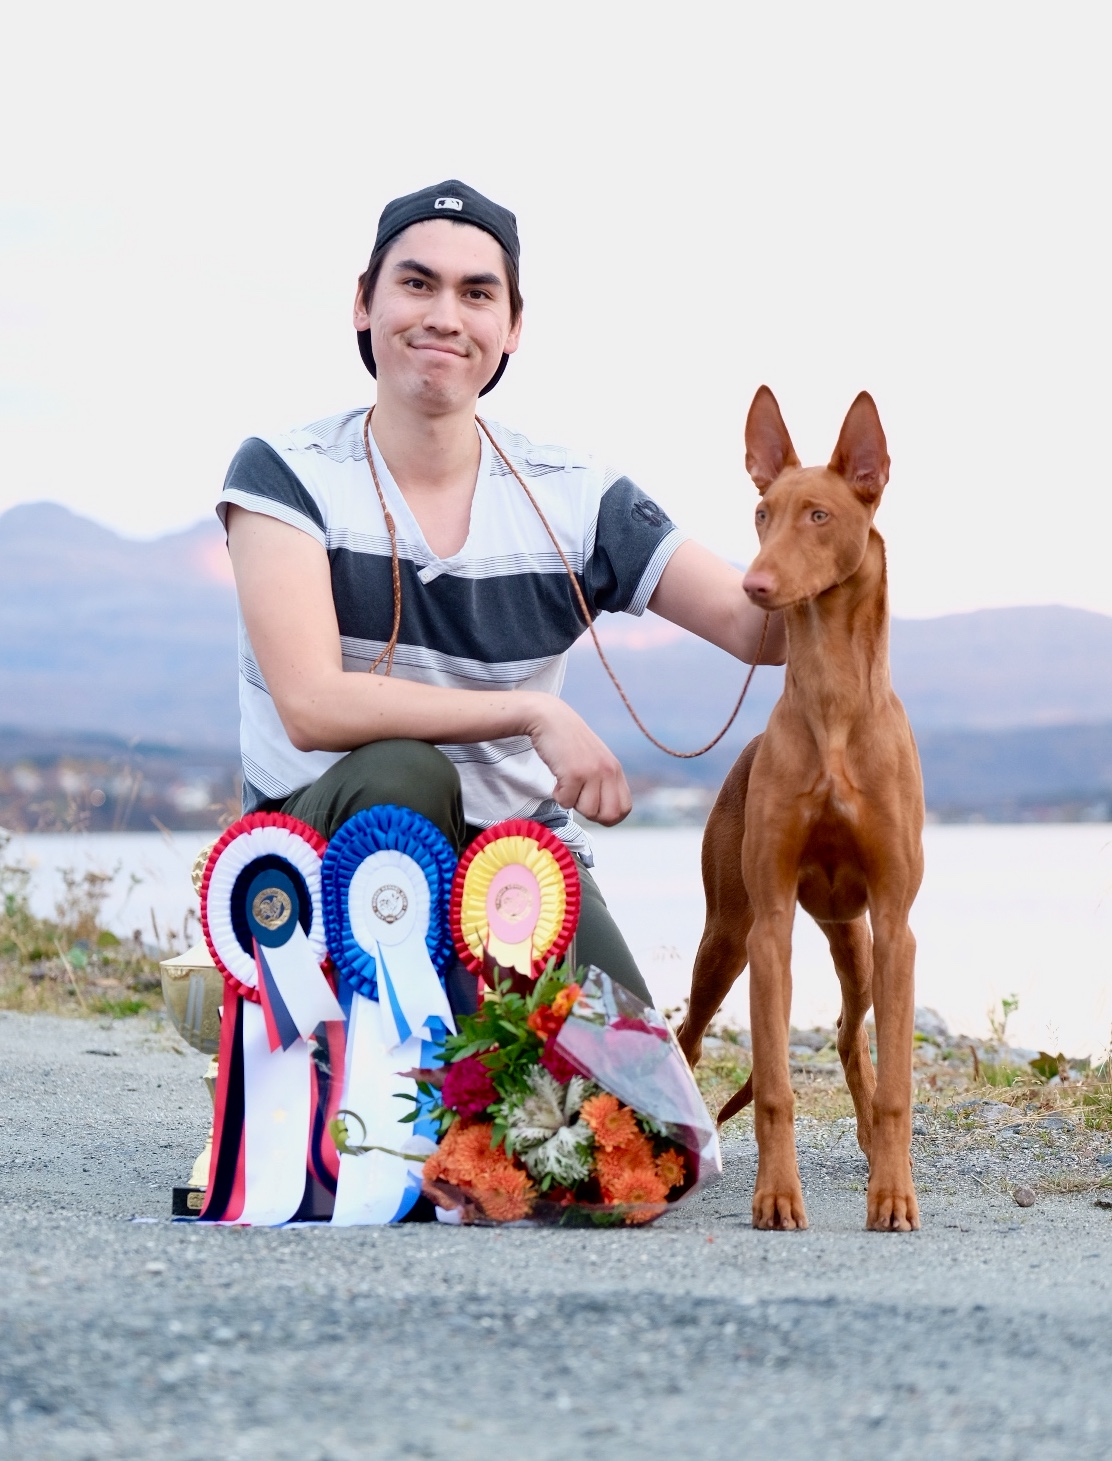 Sandy Best In Show Puppy at NKK Harstad 2017!